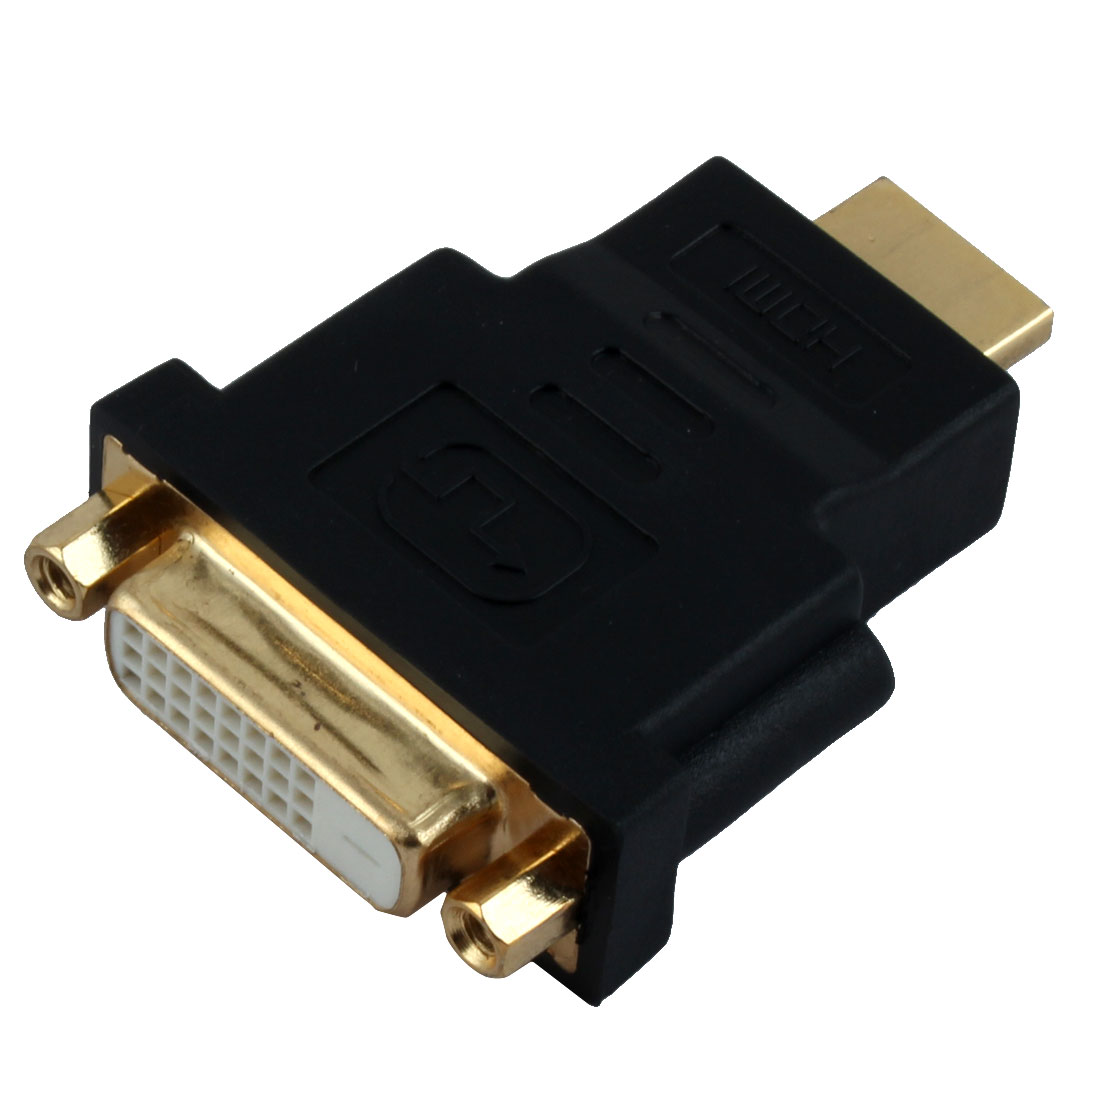 TV DVI-D Dual Link Female To HDMI Female Adapter